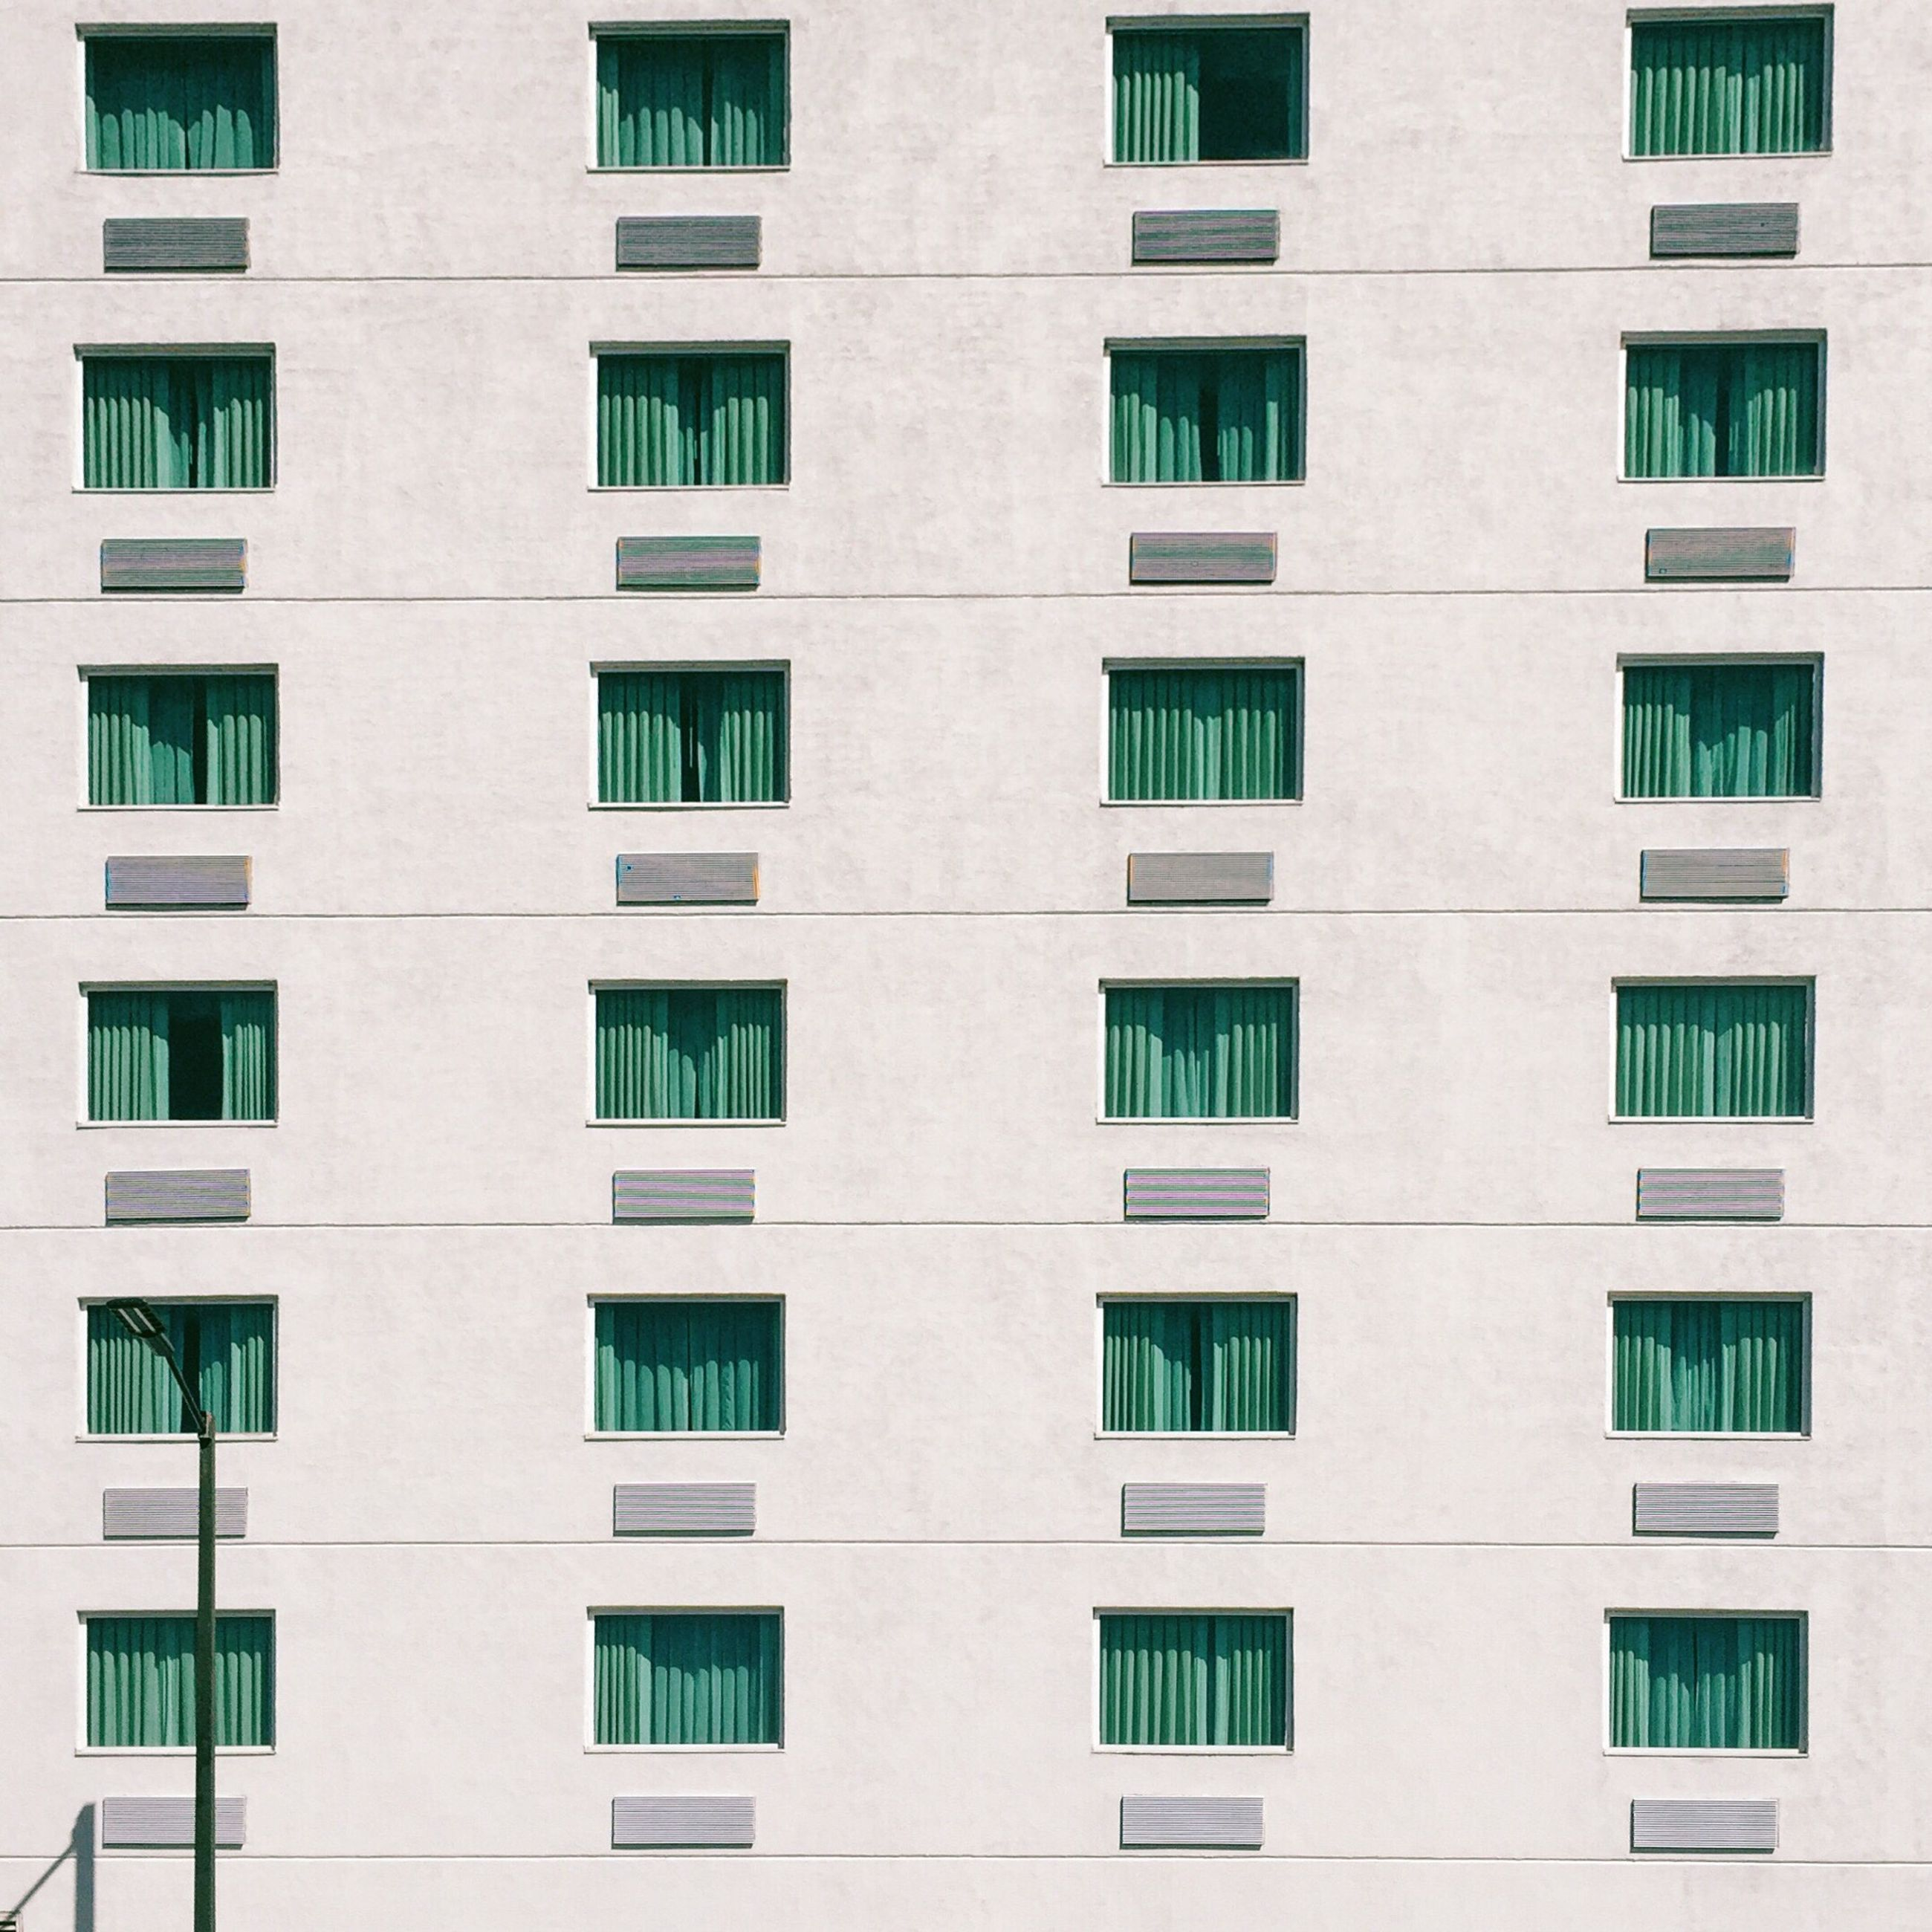 architecture, building exterior, window, built structure, full frame, backgrounds, repetition, building, residential building, in a row, apartment, low angle view, residential structure, city, day, outdoors, no people, balcony, side by side, facade